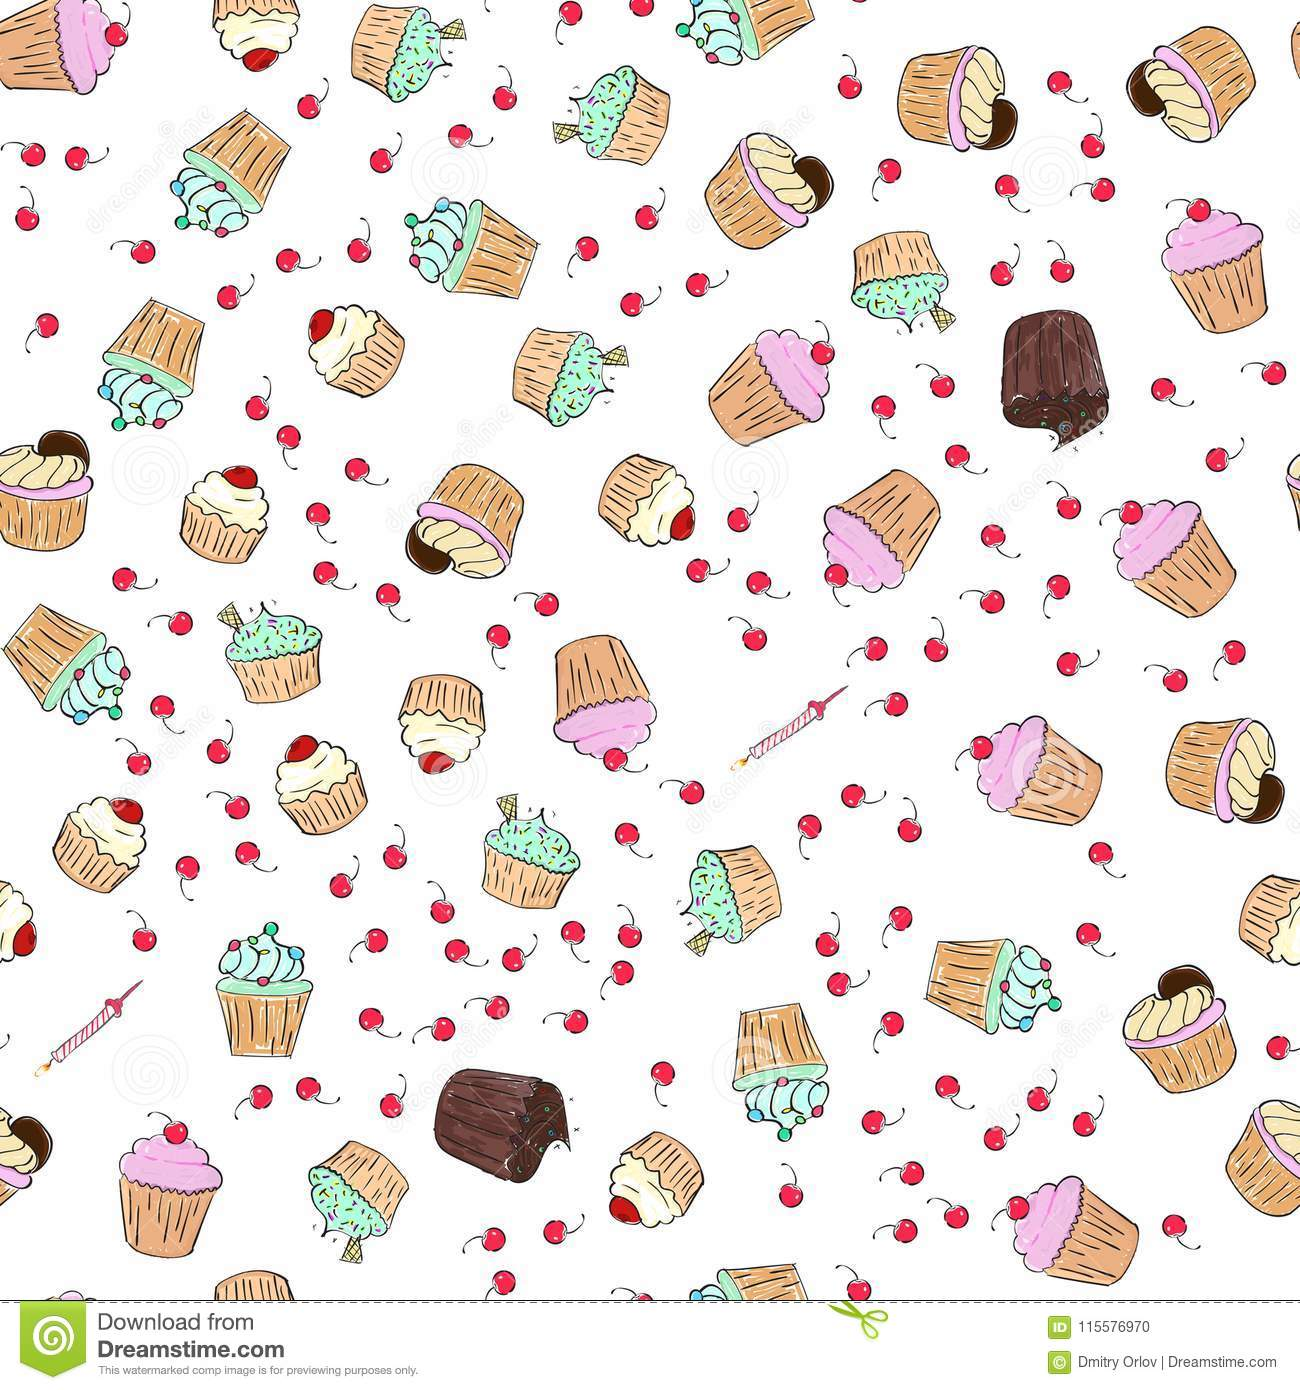 Cupcakes pattern illustration. Seamless print with pastry set. Vector bakery background.Hand draw style